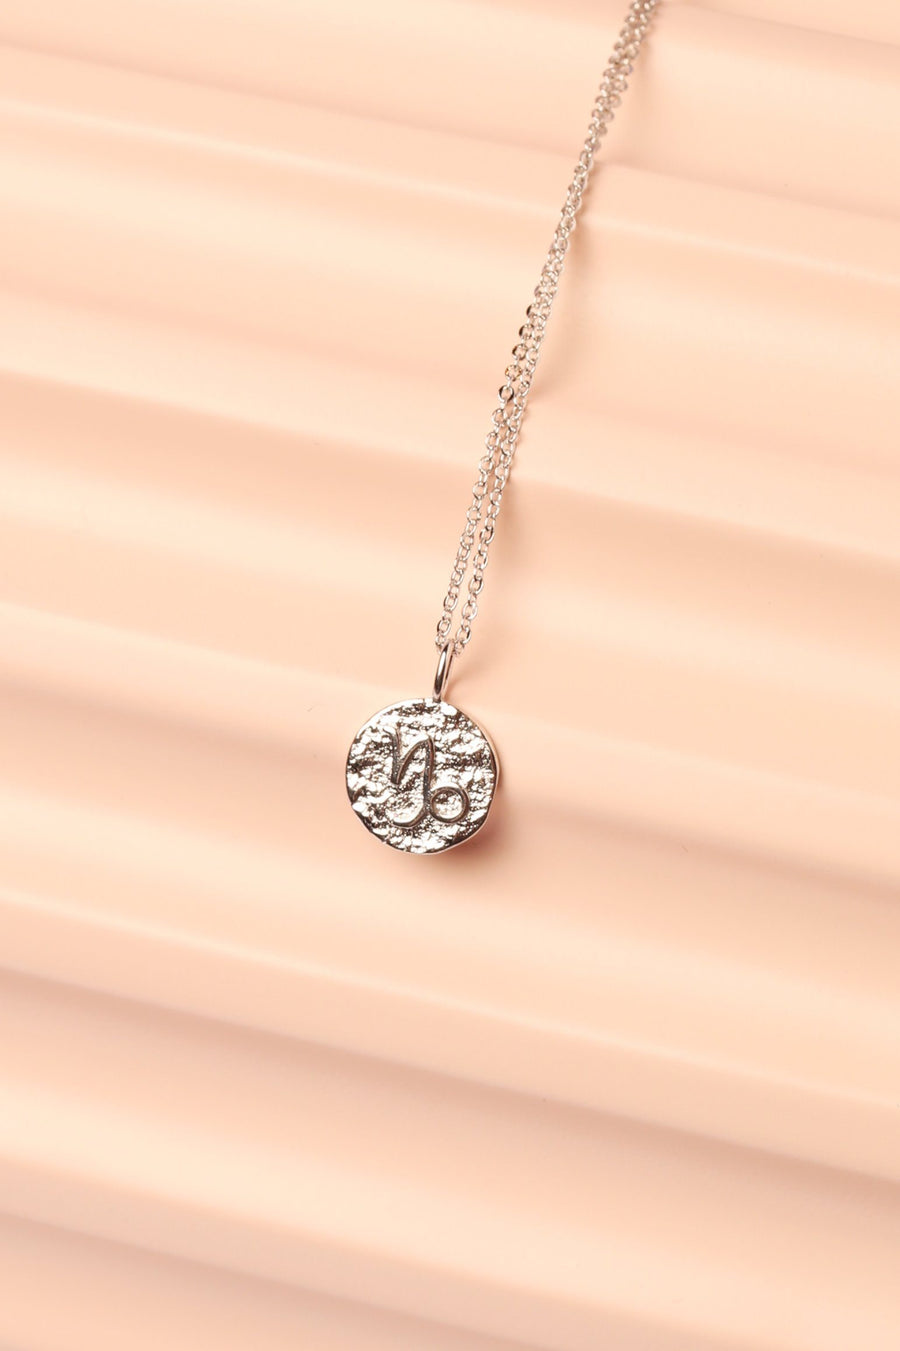 Silver Zodiac Charm Necklace Necklace Mulberry & Grand Capricorn